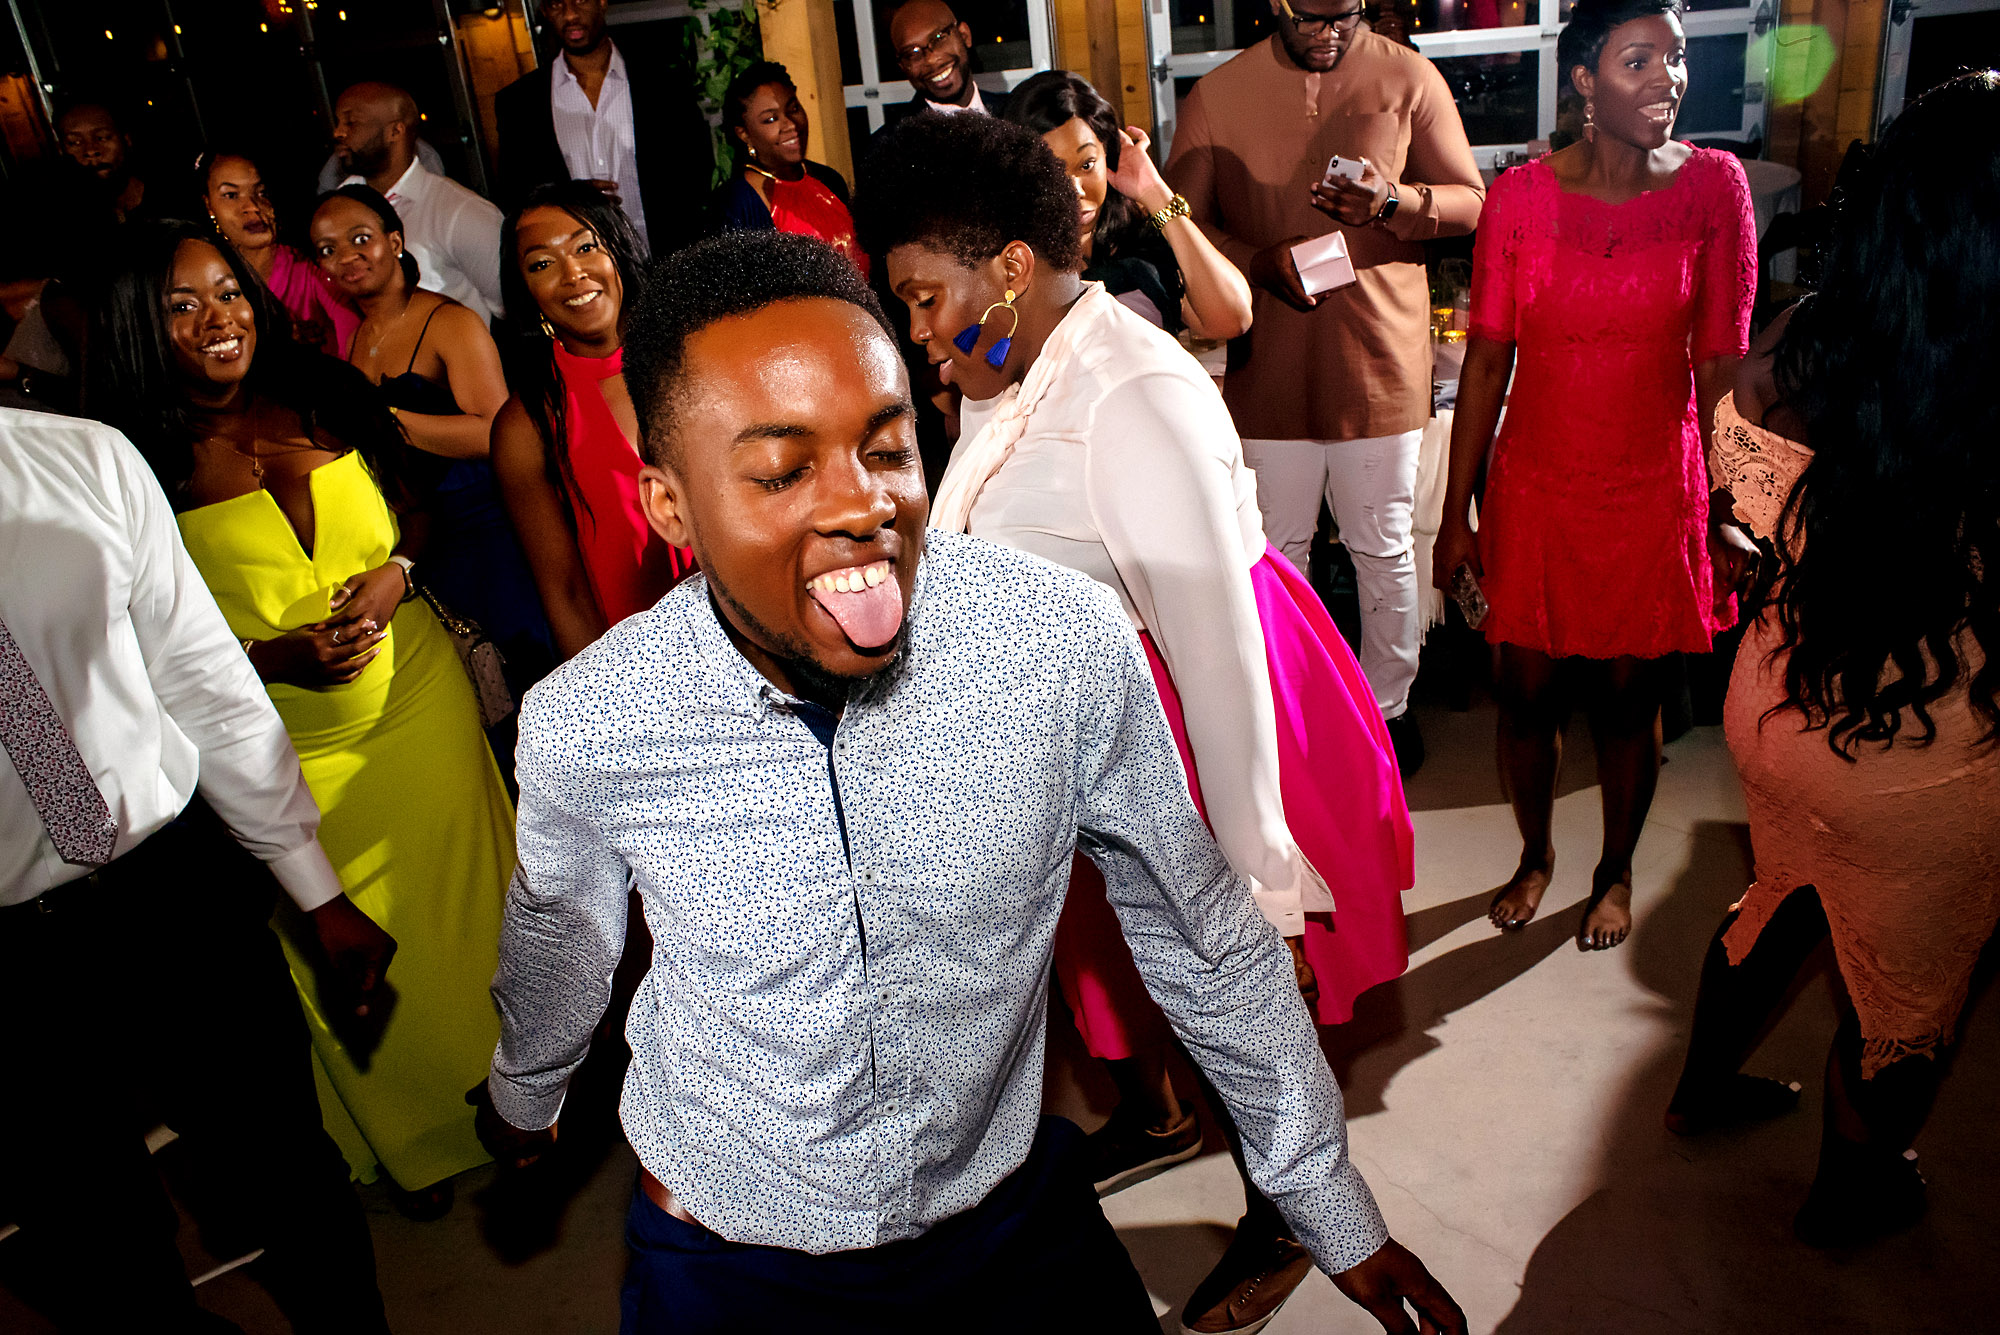 guest on the dancefloor with tongue out.jpg